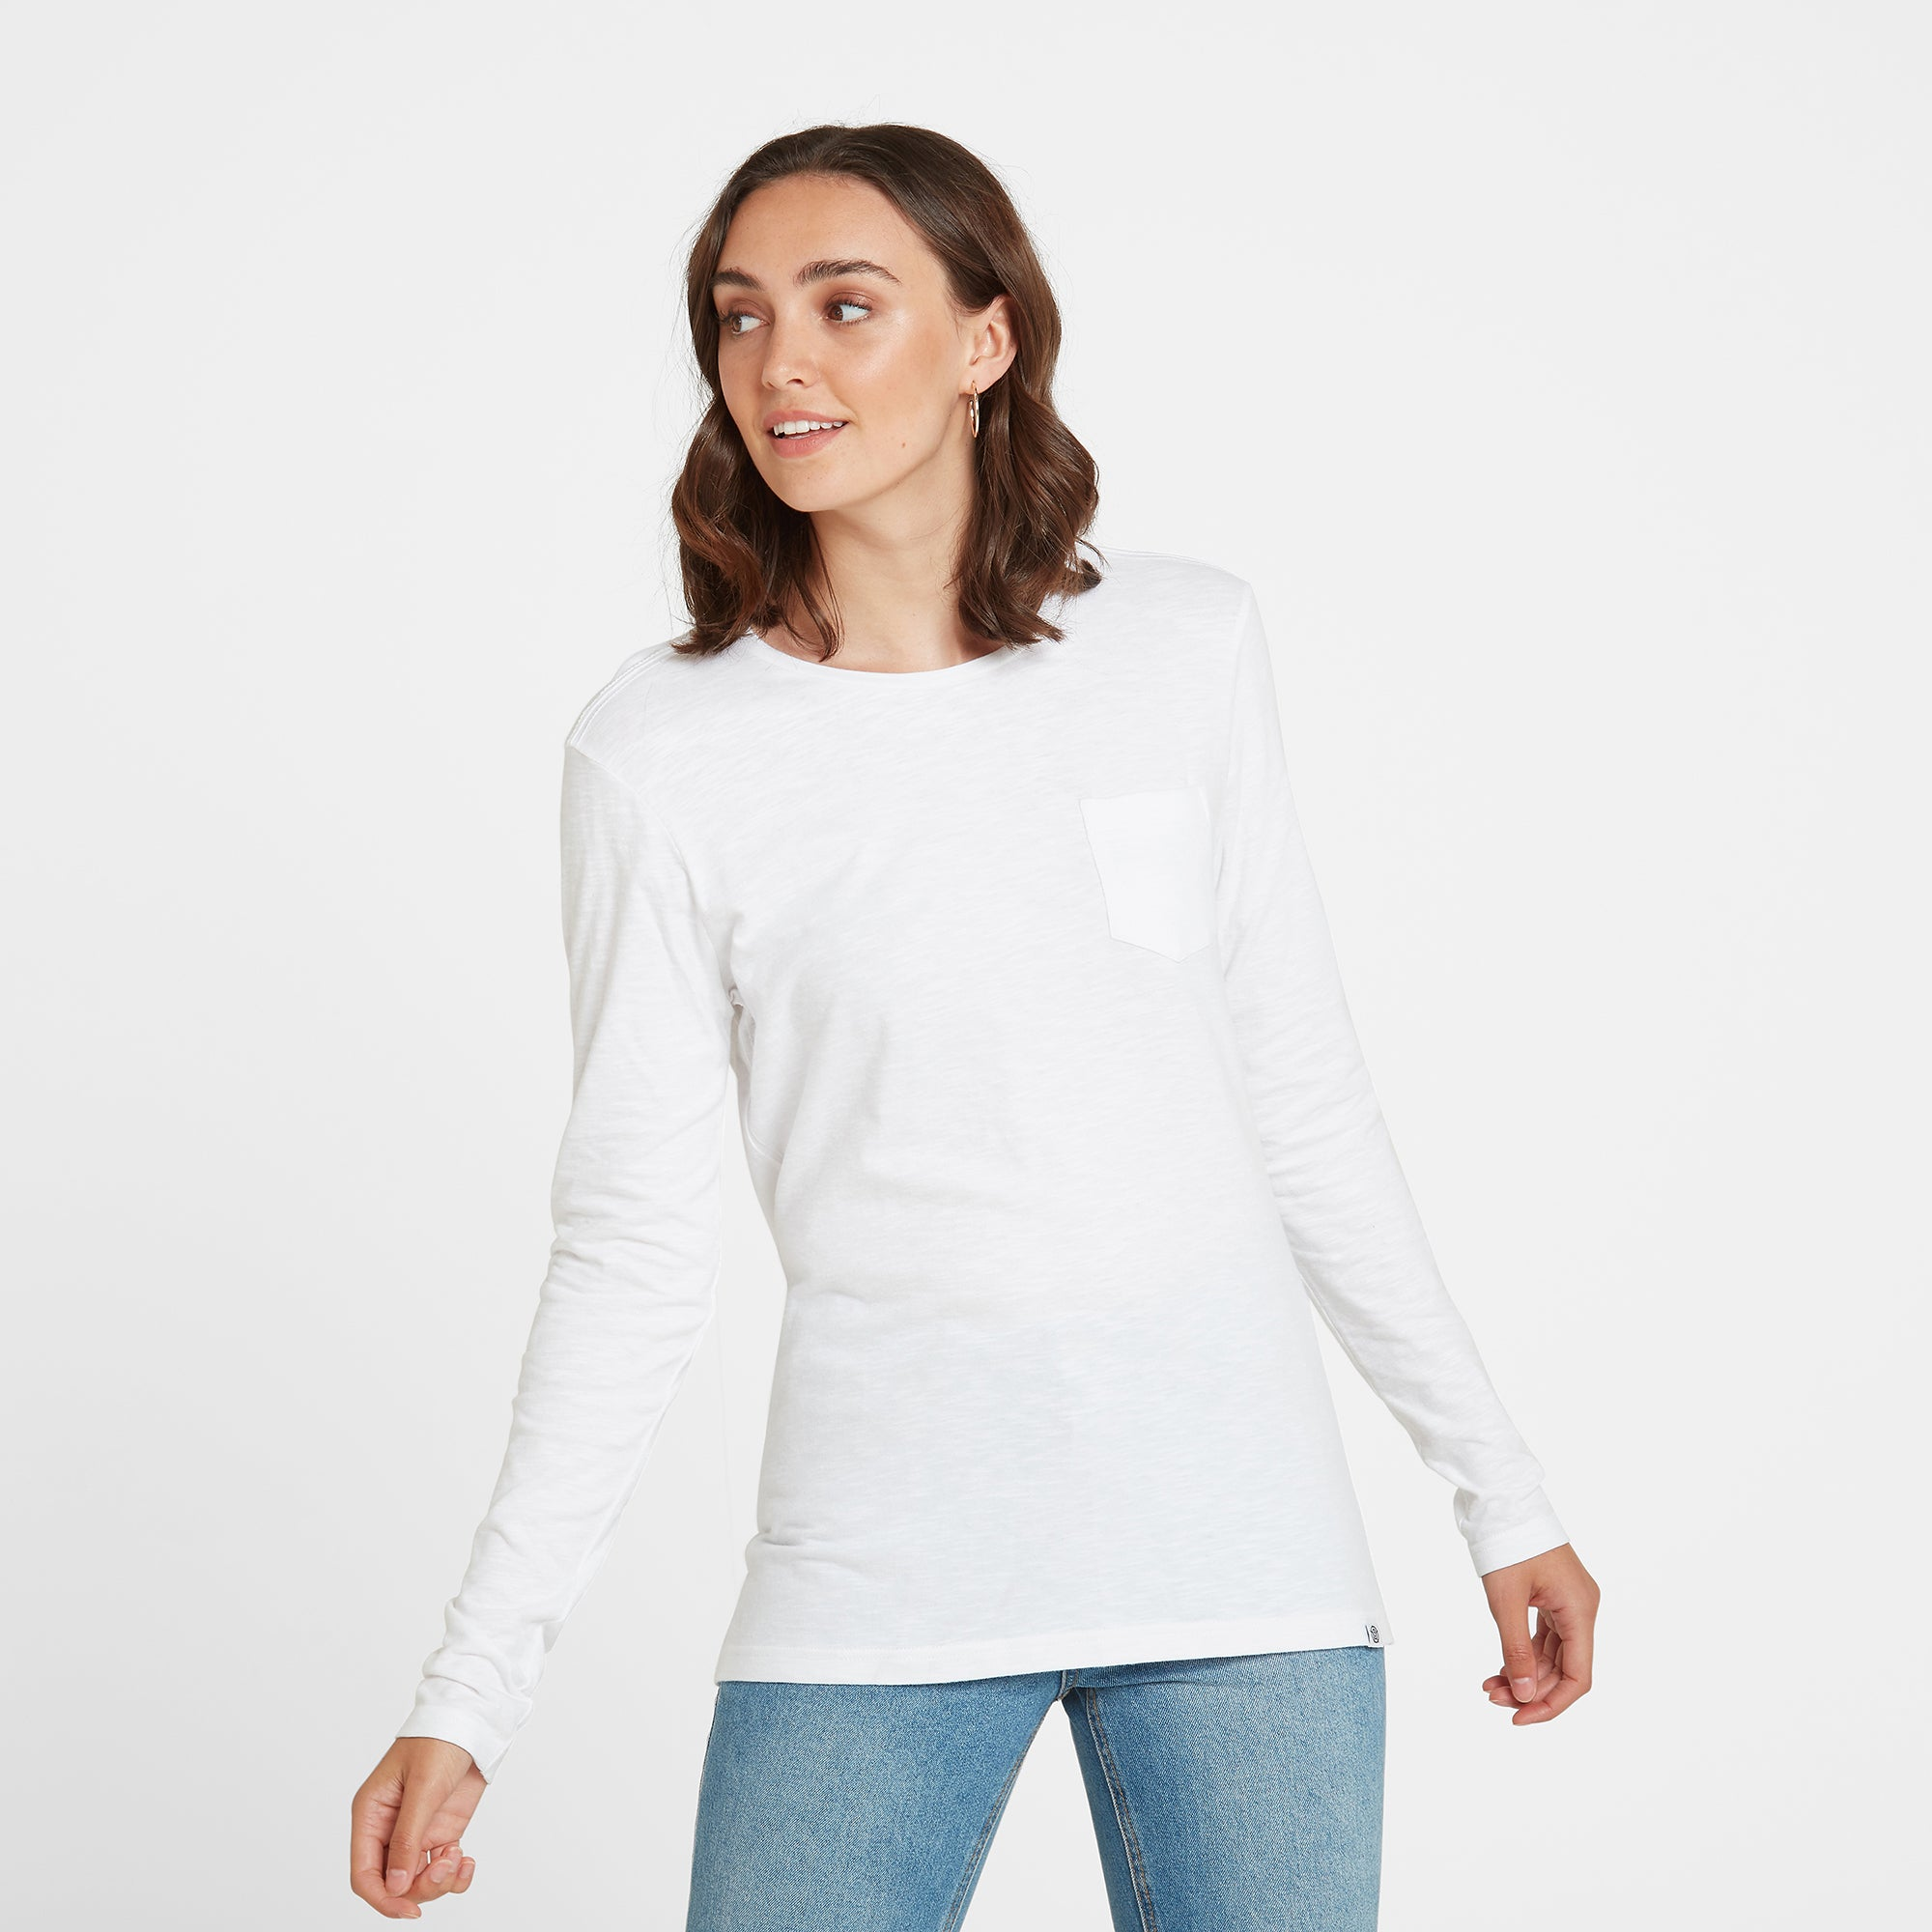 Myrtle Womens Long Sleeve Pocket T-Shirt - Ice Grey